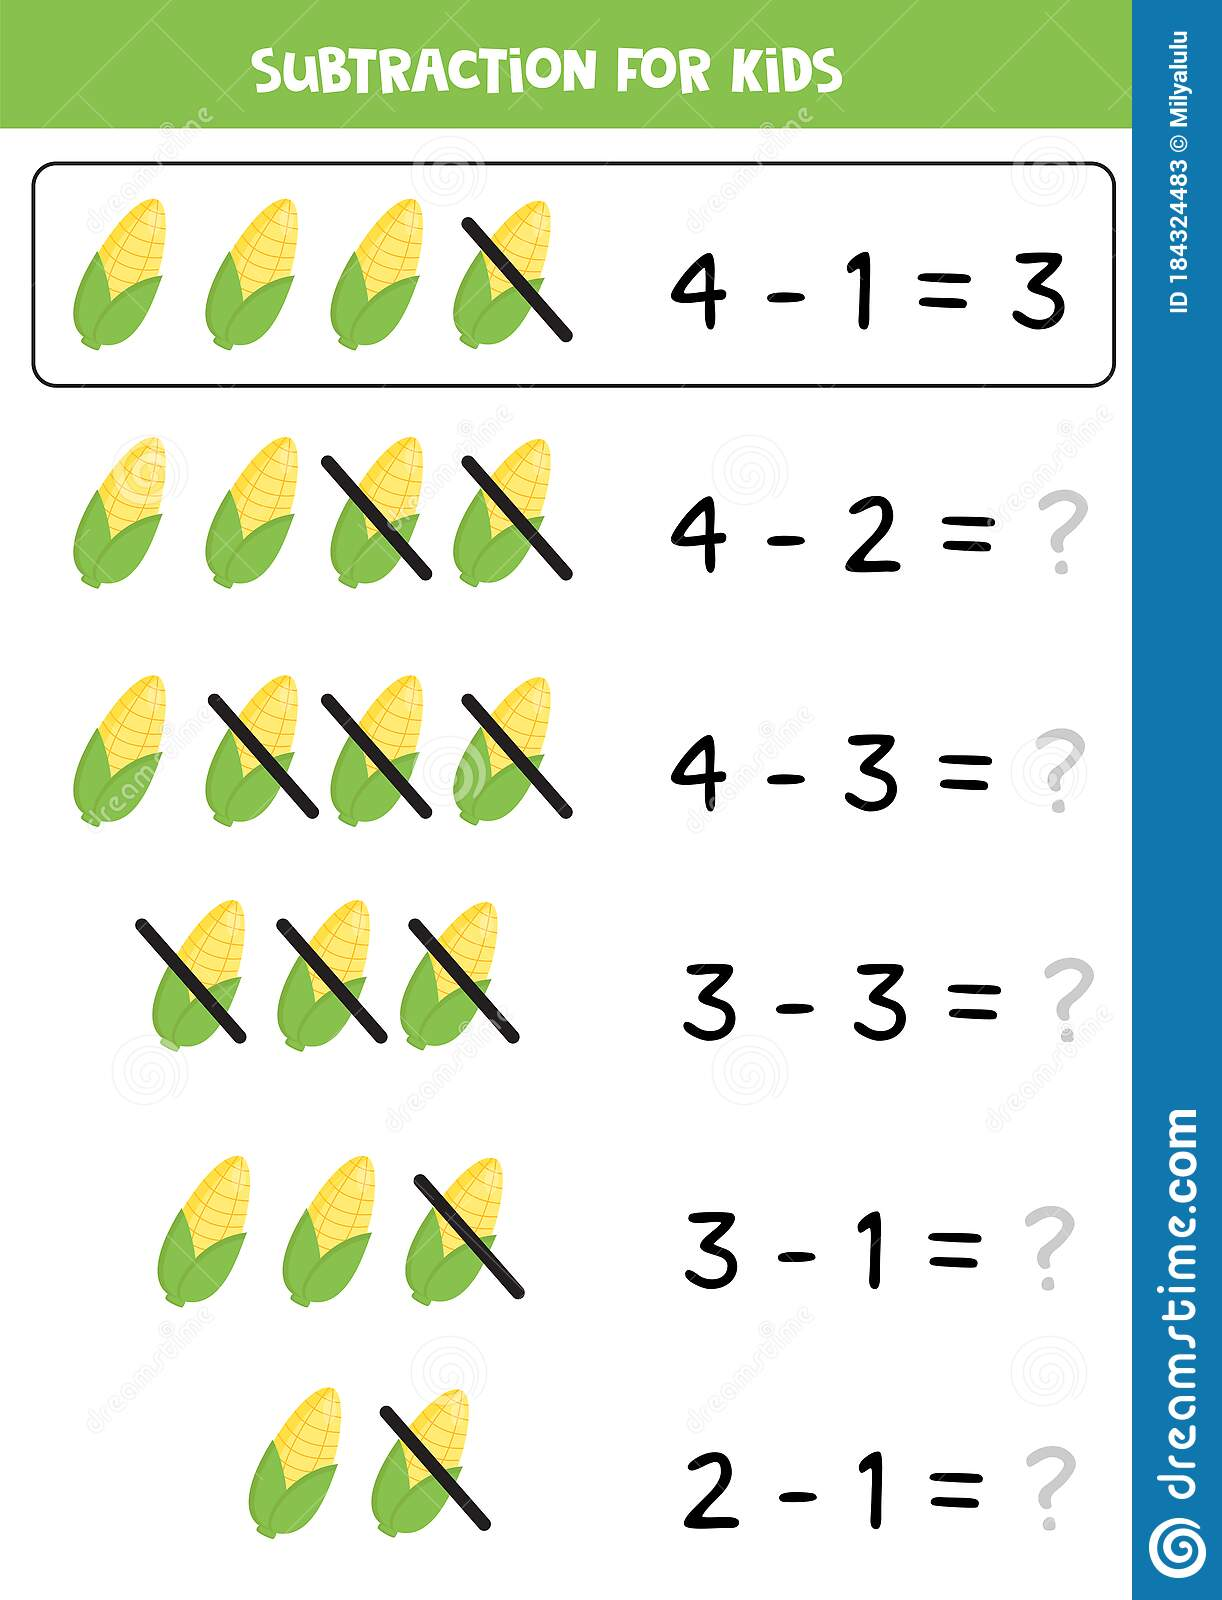 Subtracting Corncobs Educational Math Game For Kids